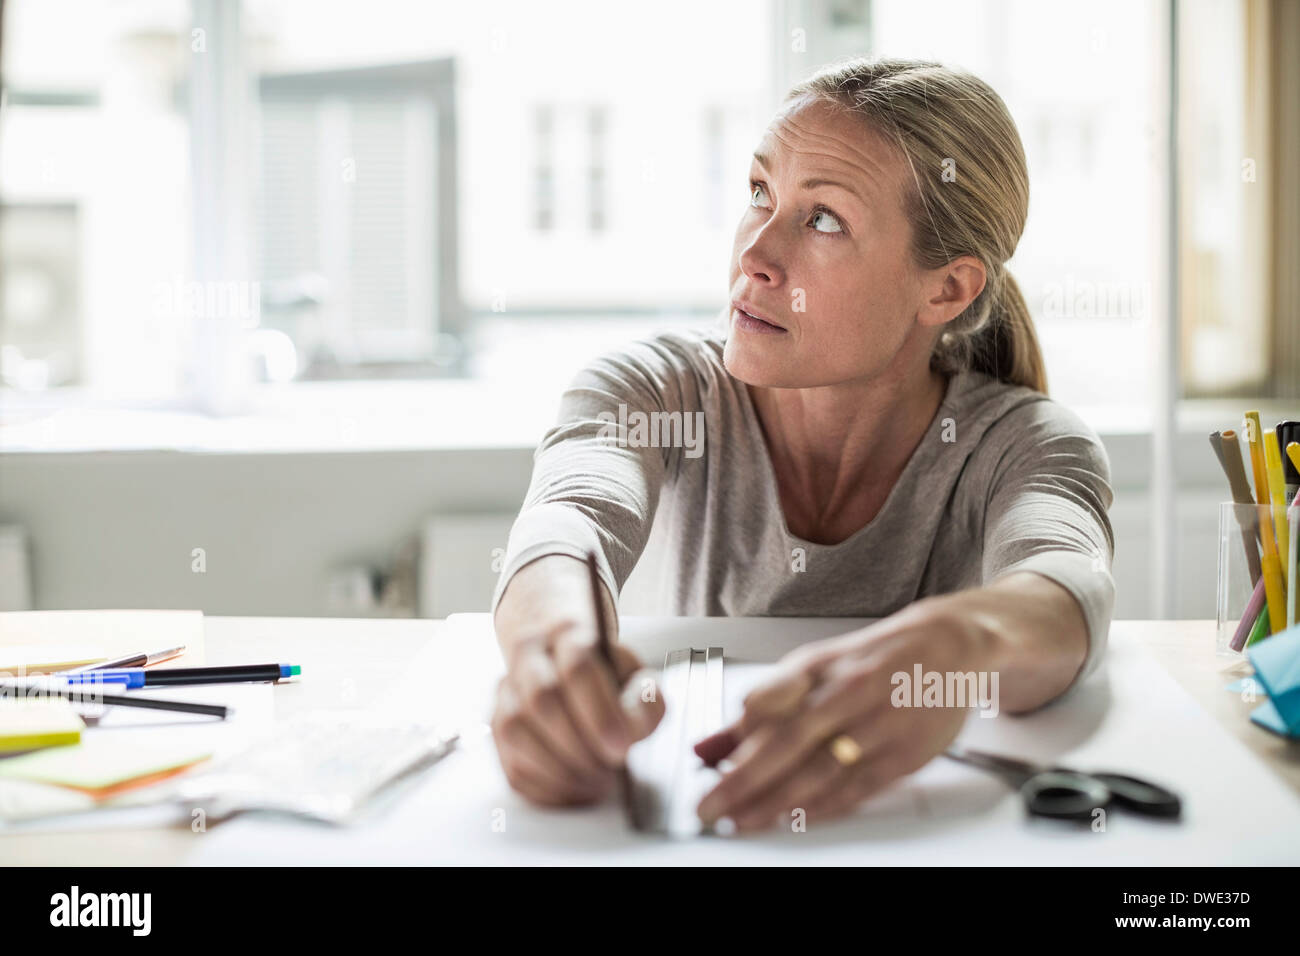 Businesswoman drawing line using ruler on paper while looking away - Stock Image